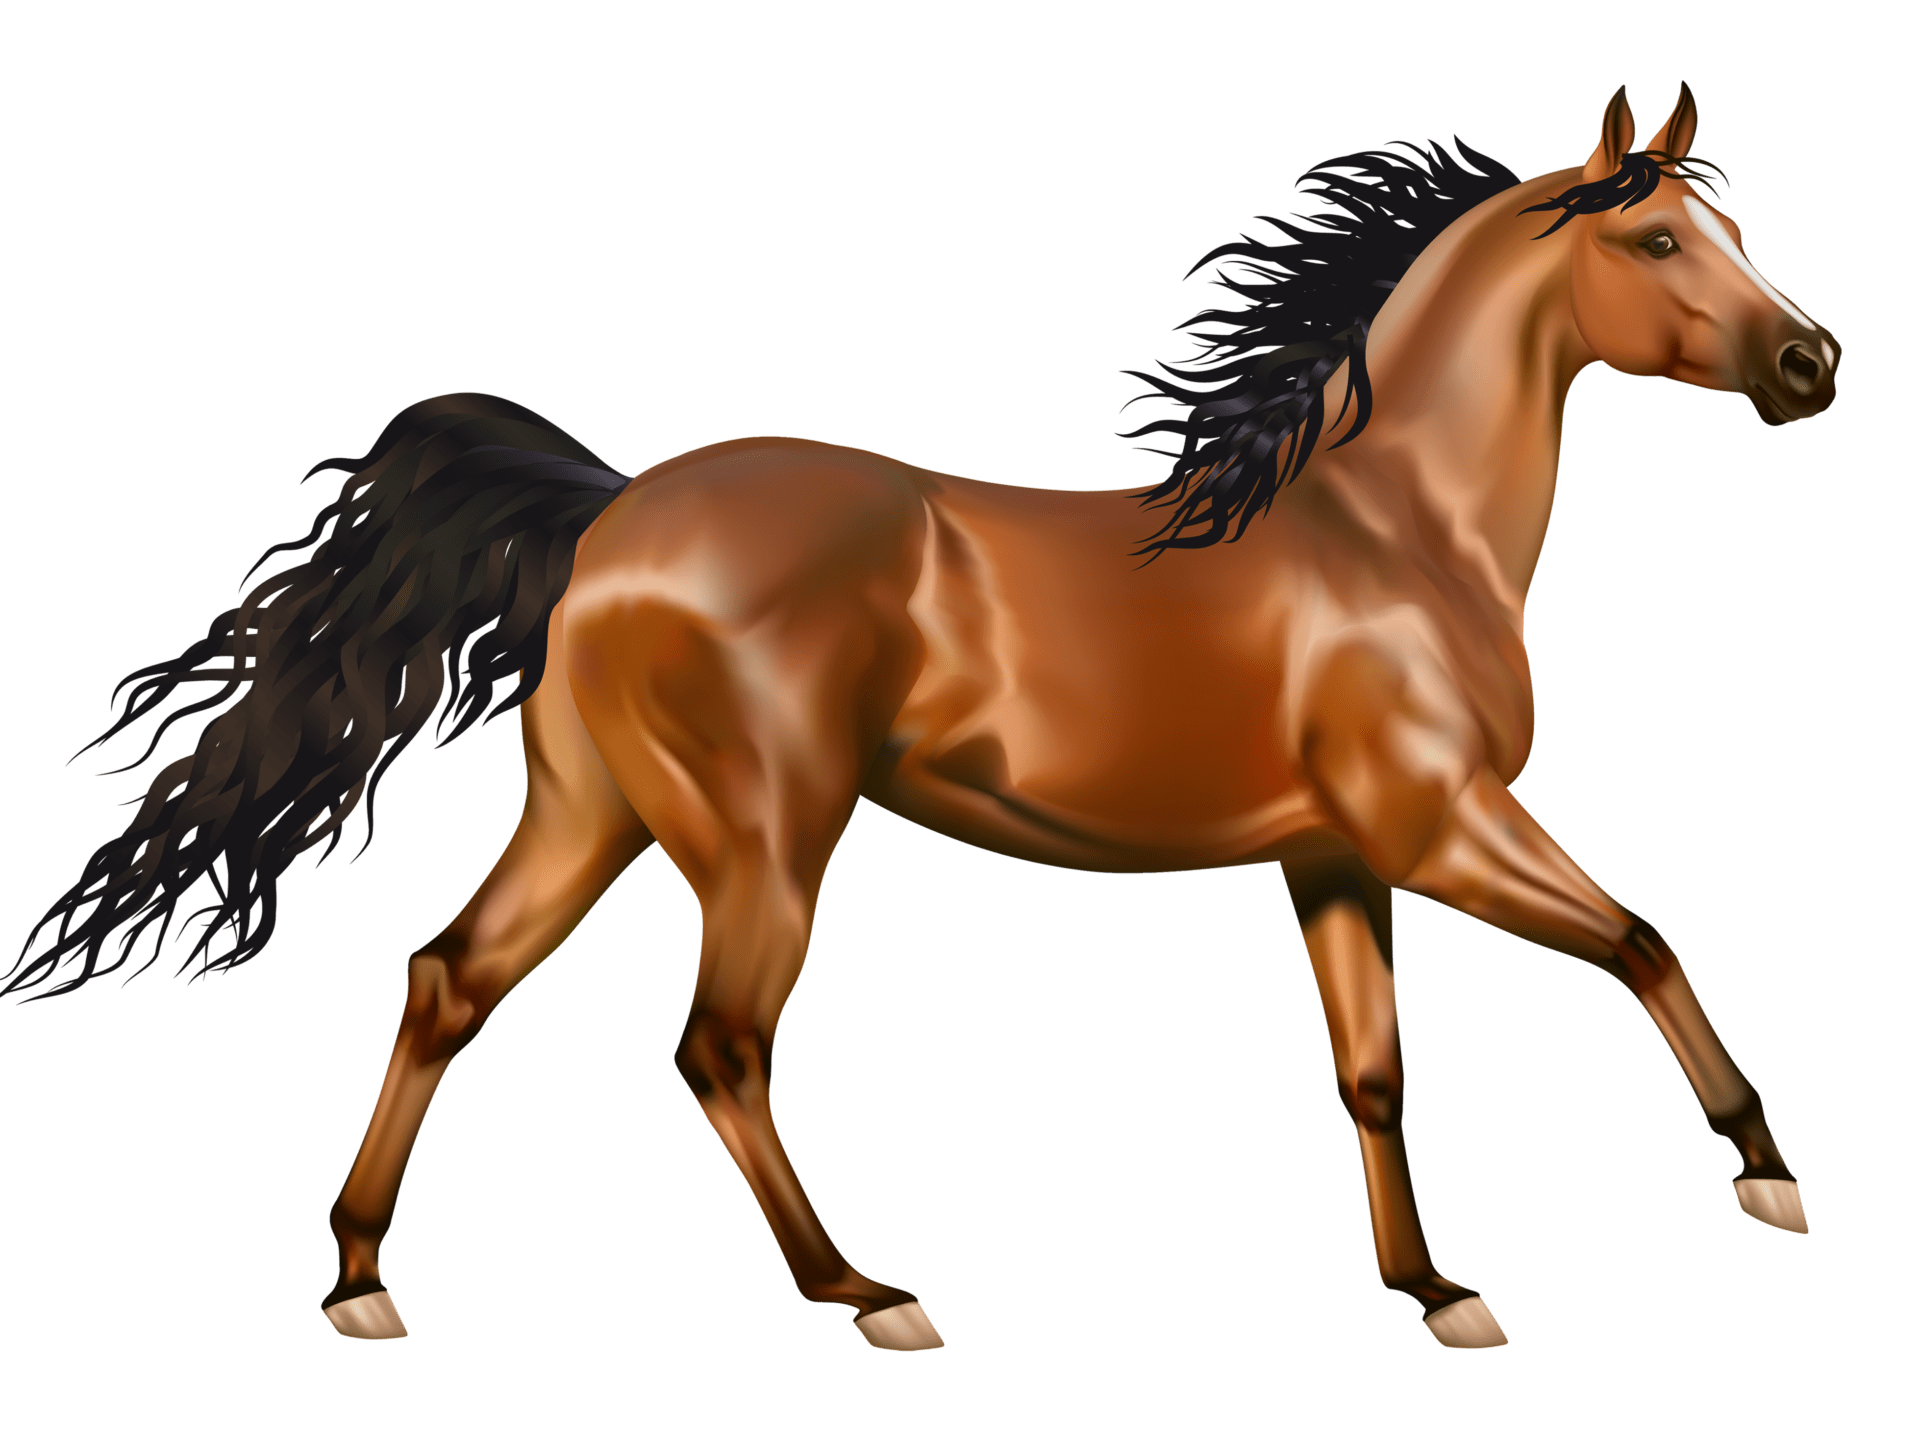 Lock Screen Wallpaper Hd Brown Horse Clip Art Wallpaer Hd 4700x2938 Wallpapers13 Com